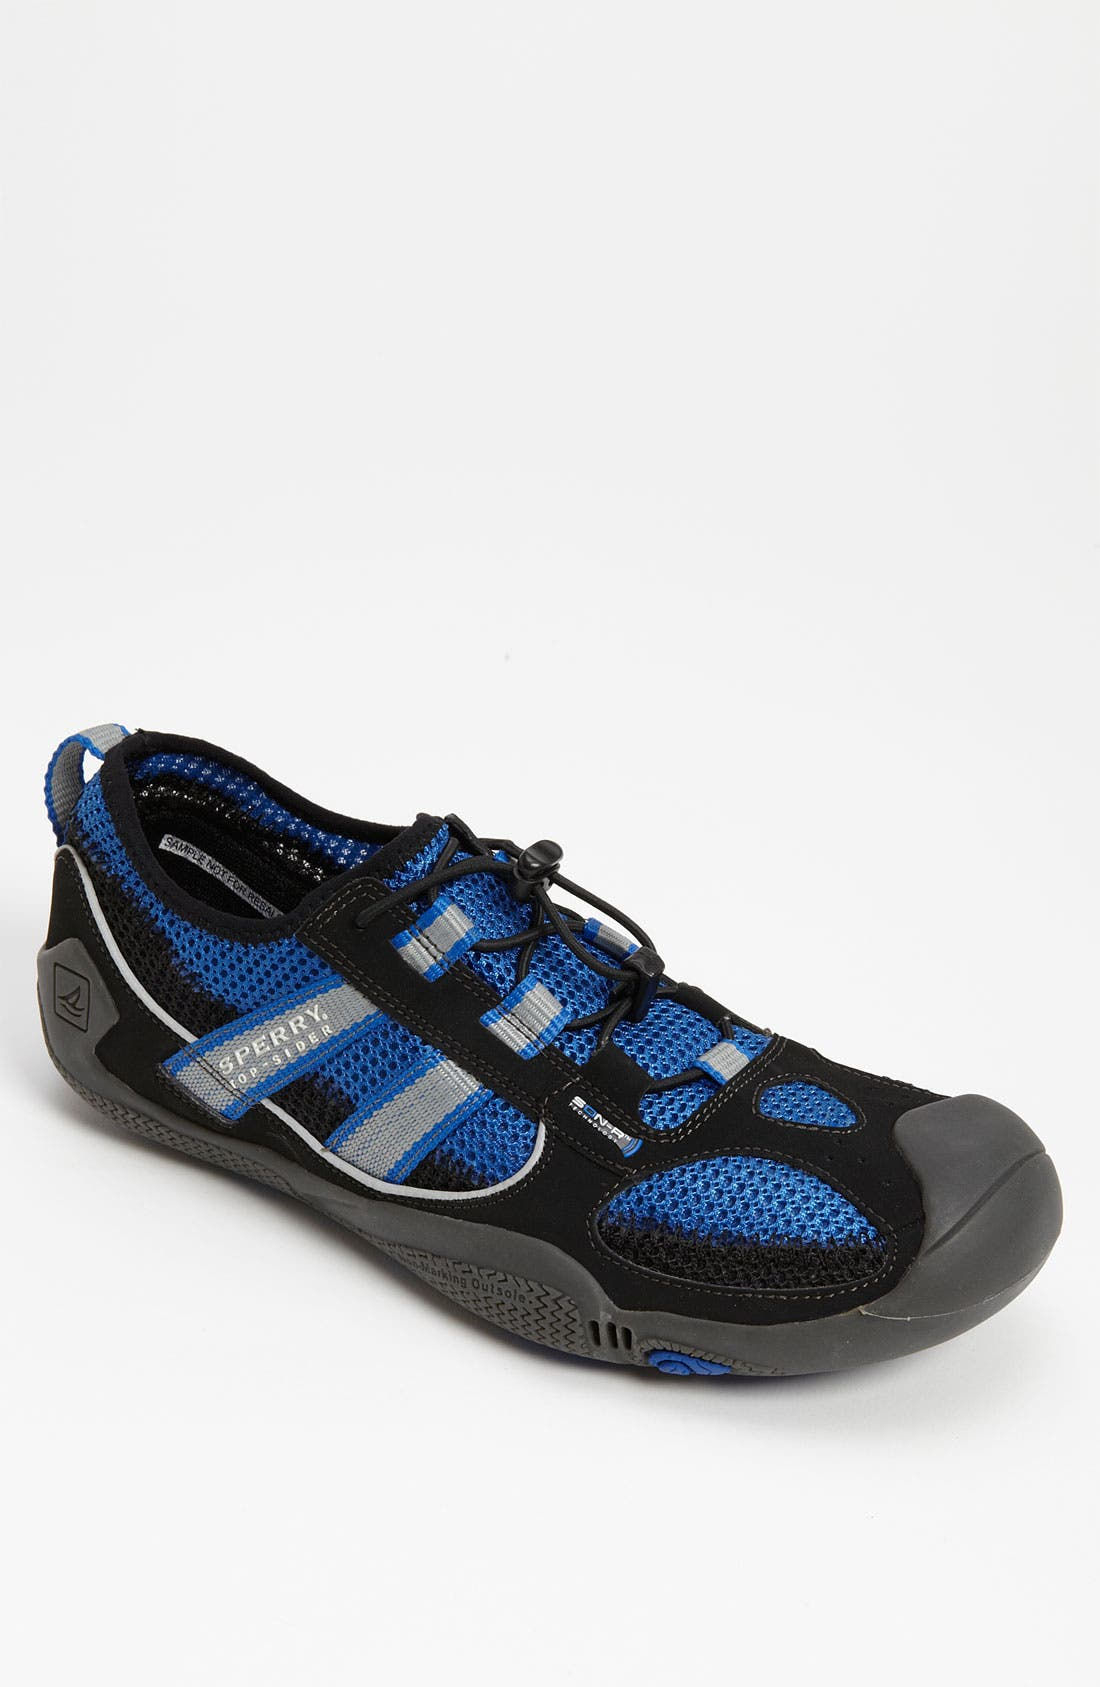 Alternate Image 1 Selected - Sperry Top-Sider® 'SON-R™ Feedback' Sandal (Online Only)